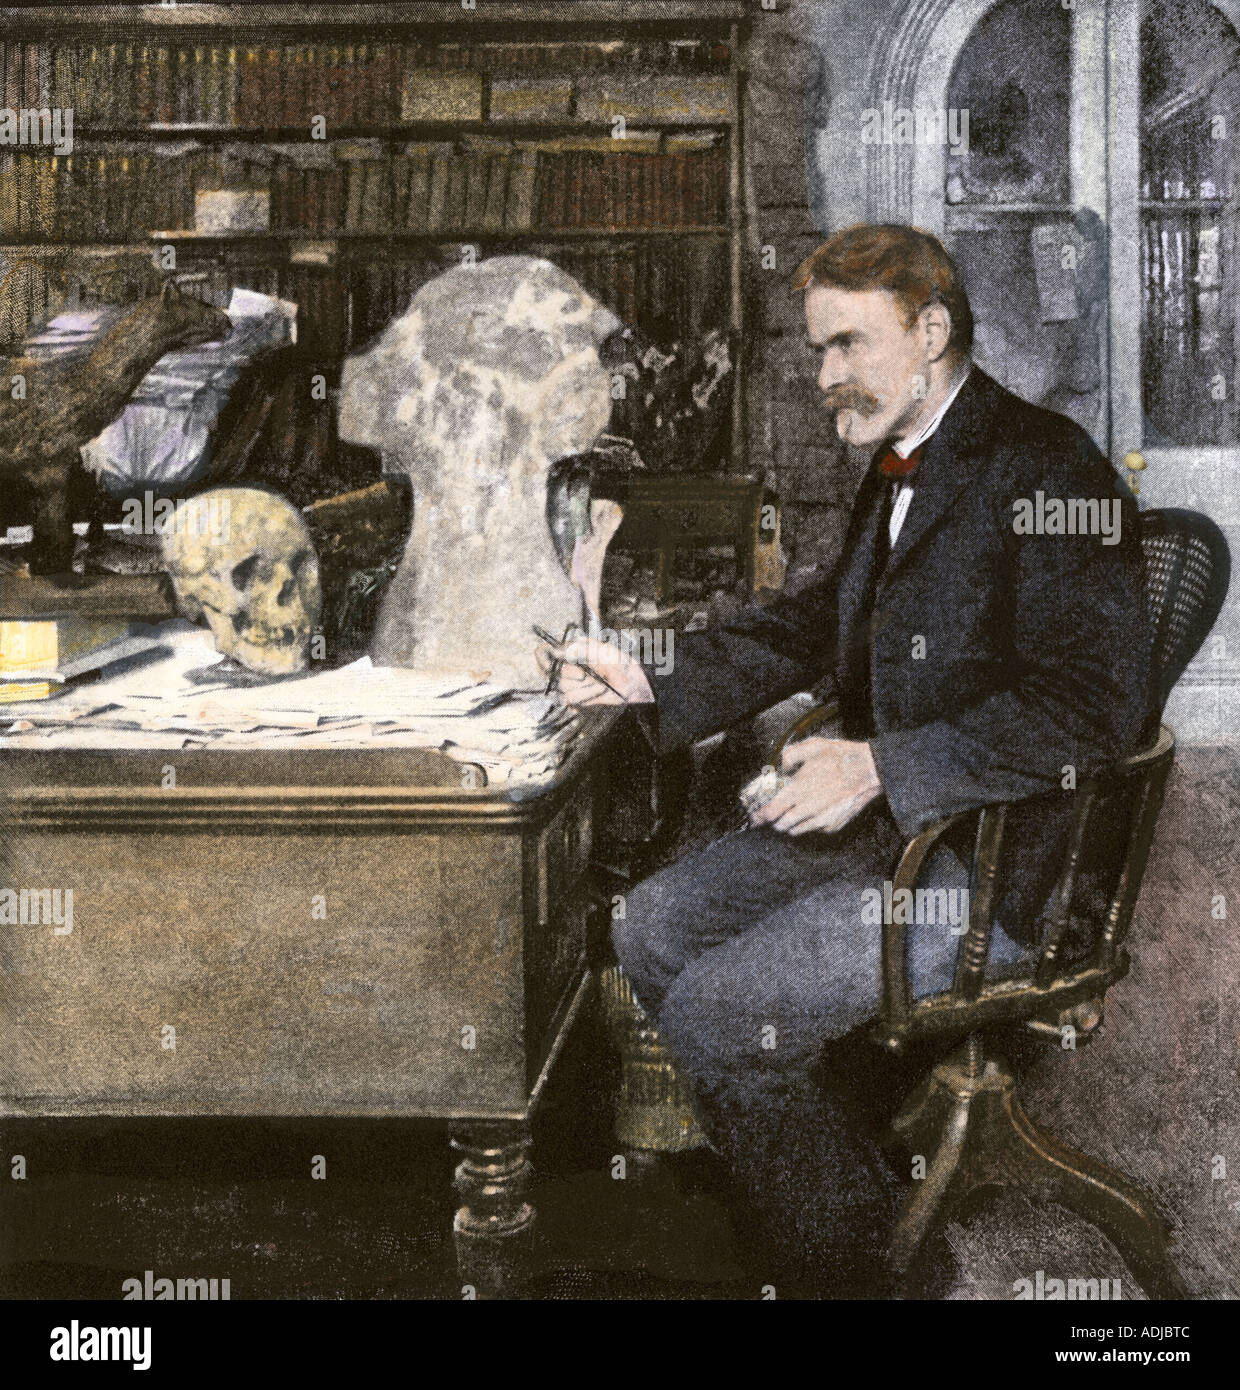 Professor Edward Drinker Cope working at his desk 1890s. Hand-colored halftone of a photograph - Stock Image